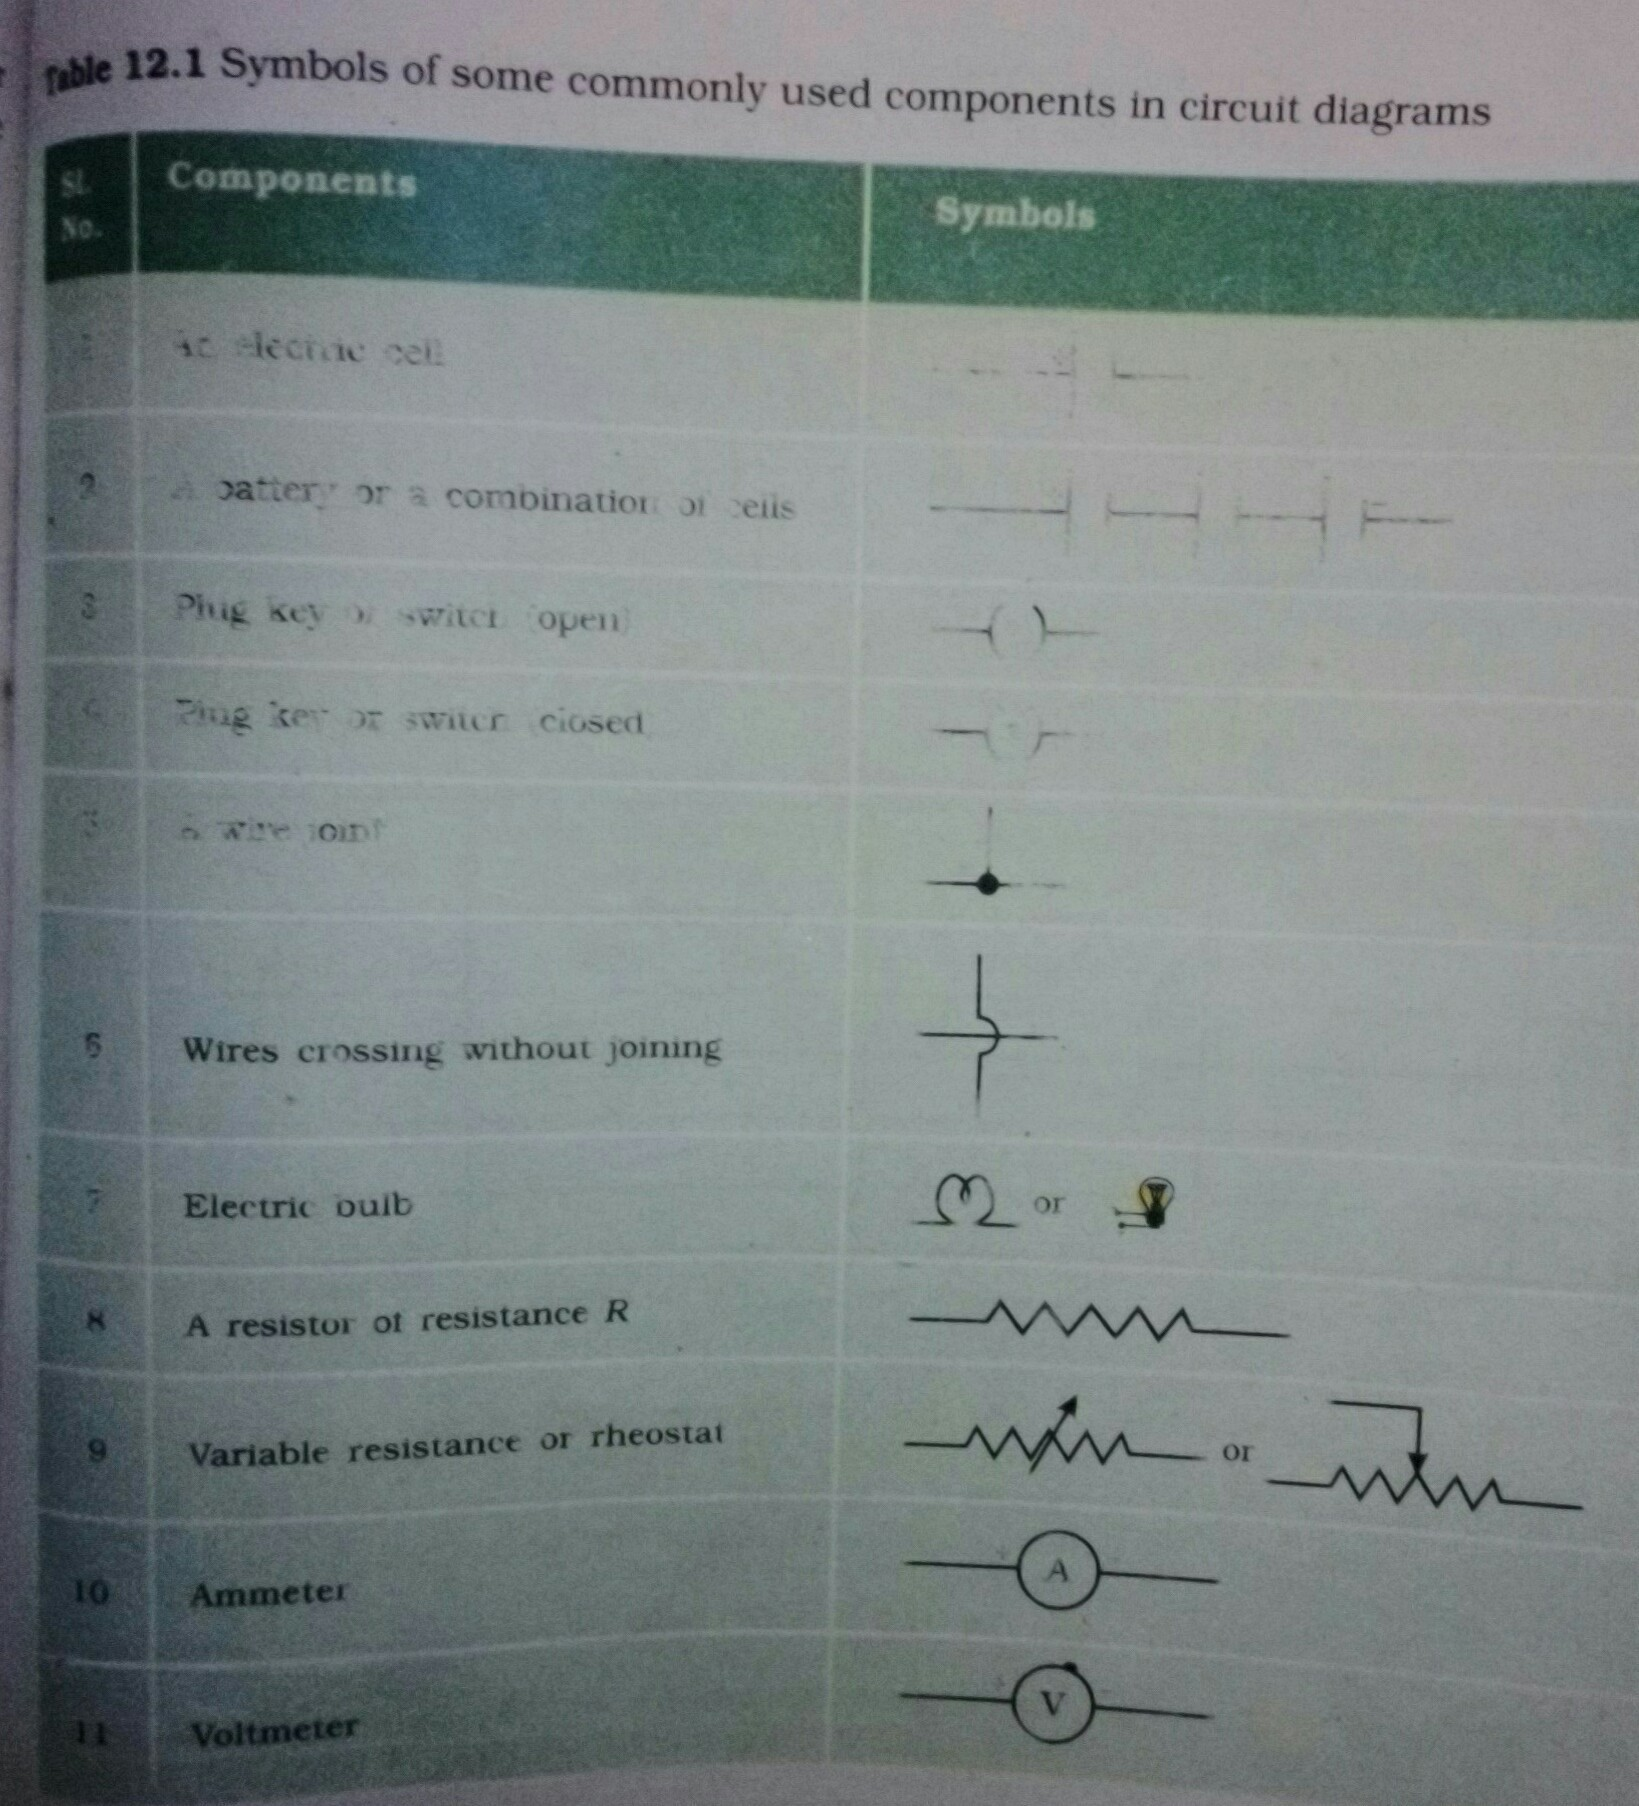 give all the symbols of some commonly used components in circuit ...